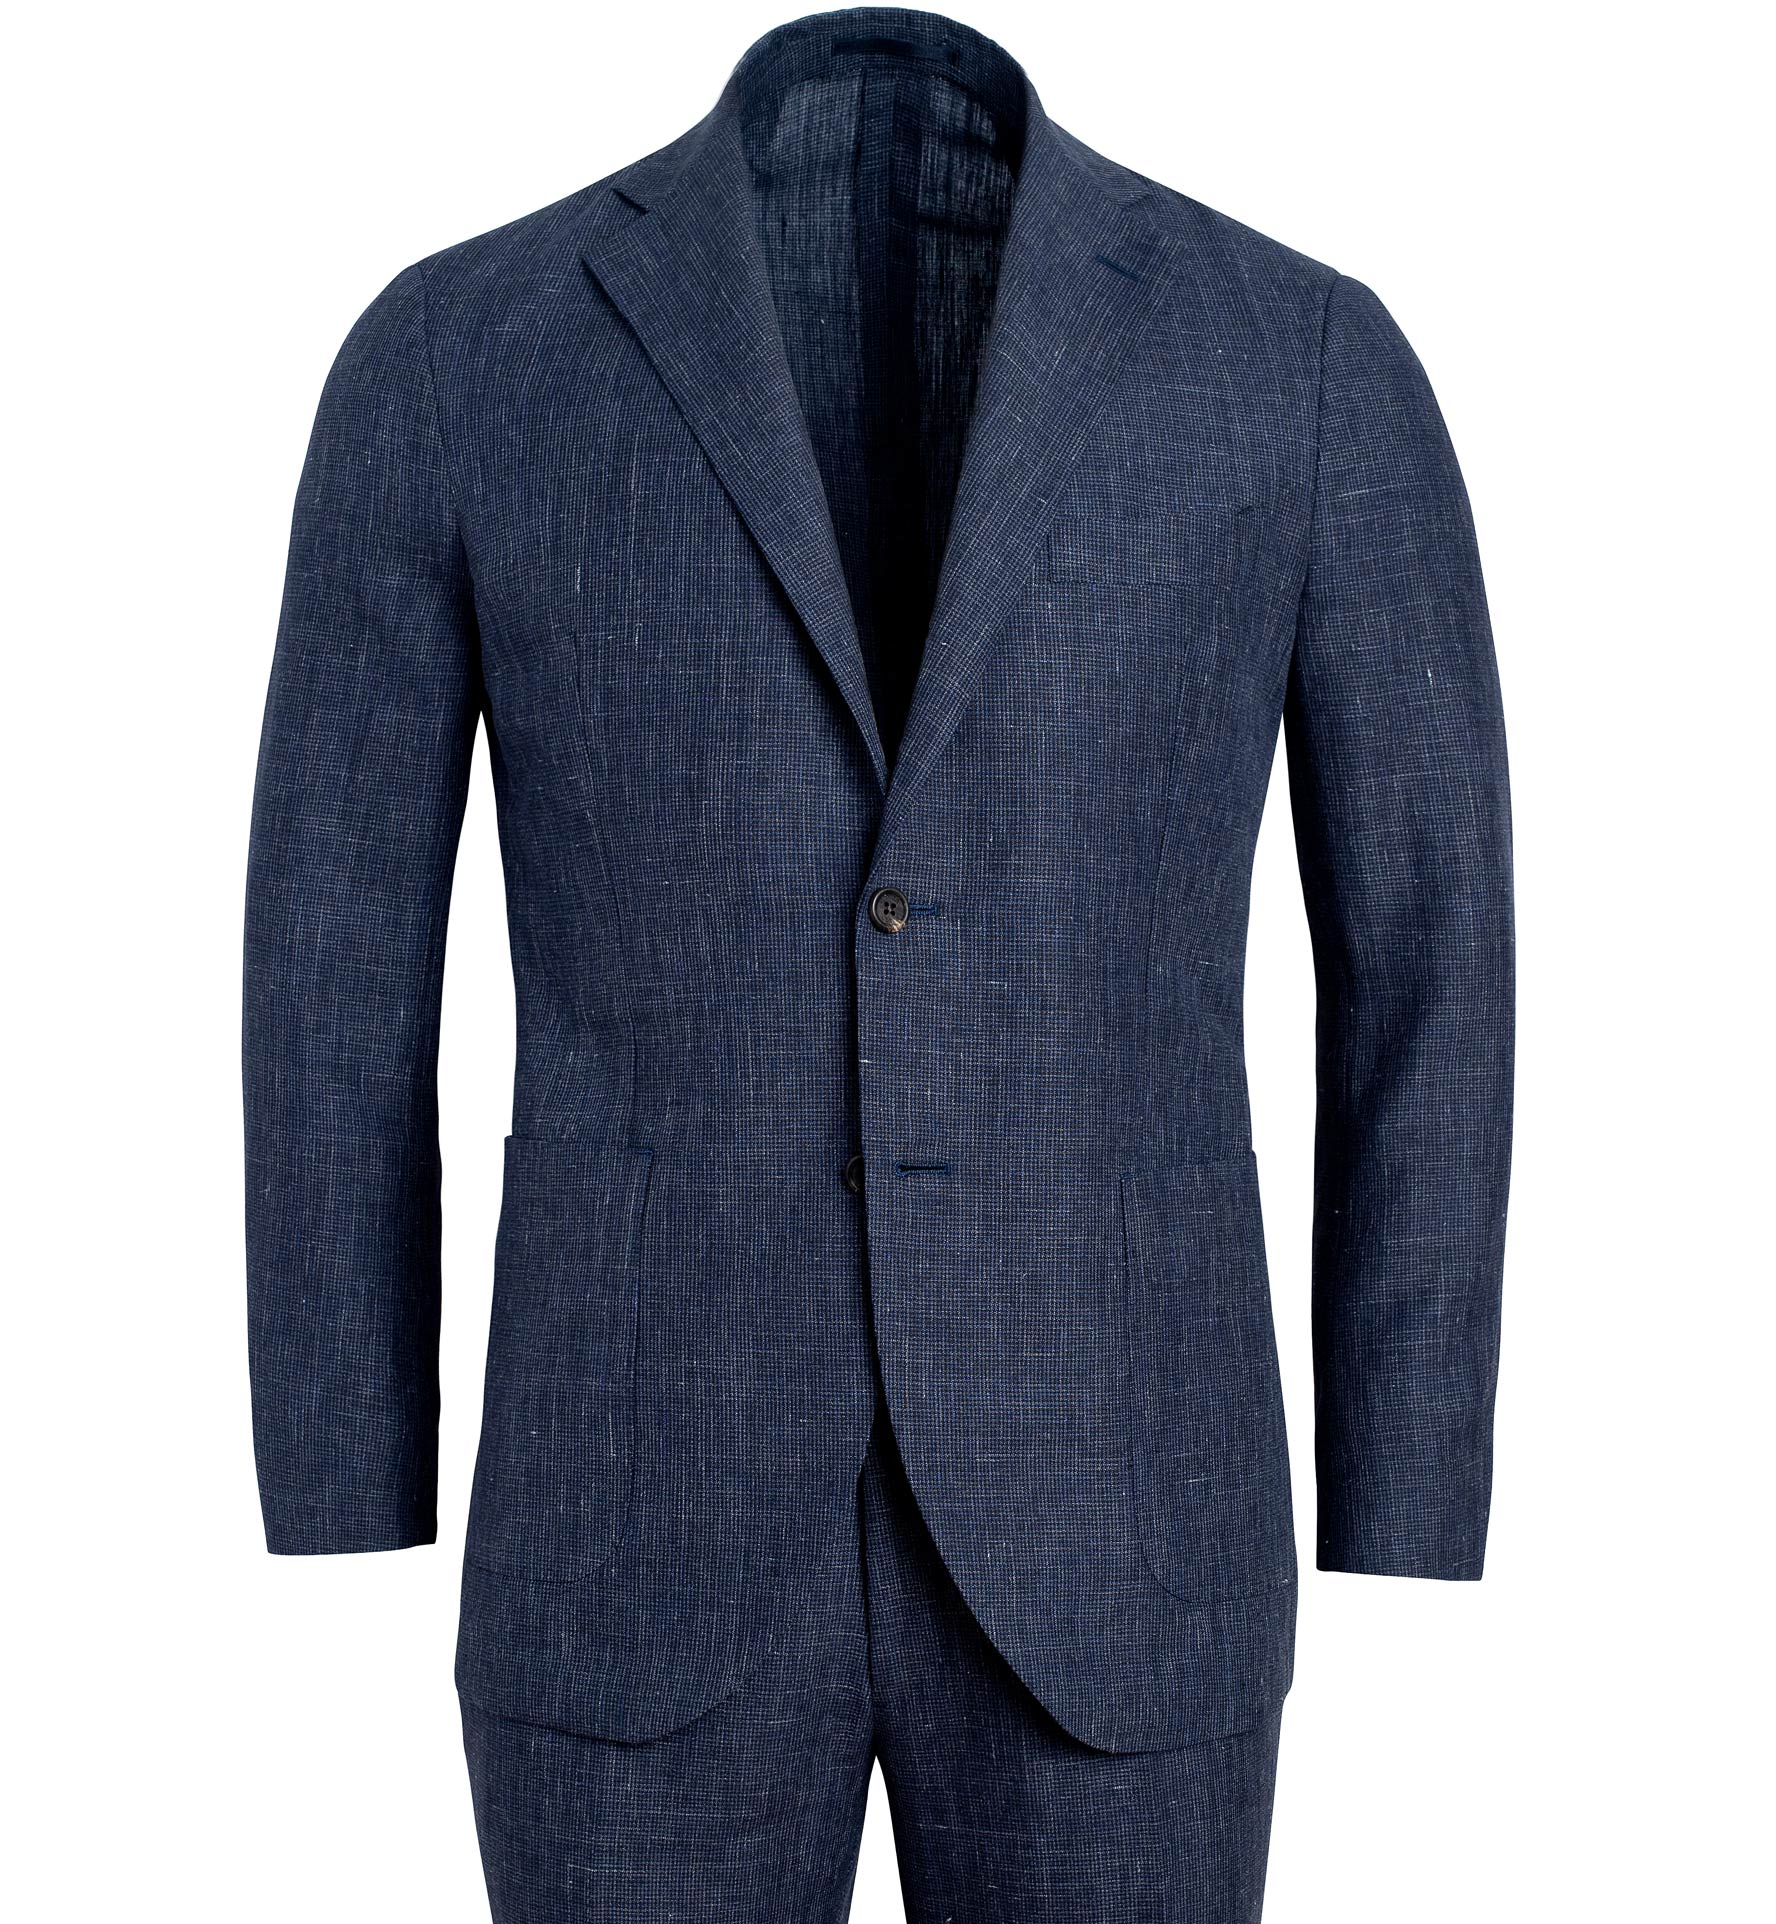 Zoom Image of Bedford Slate Houndstooth Wool and Linen Suit